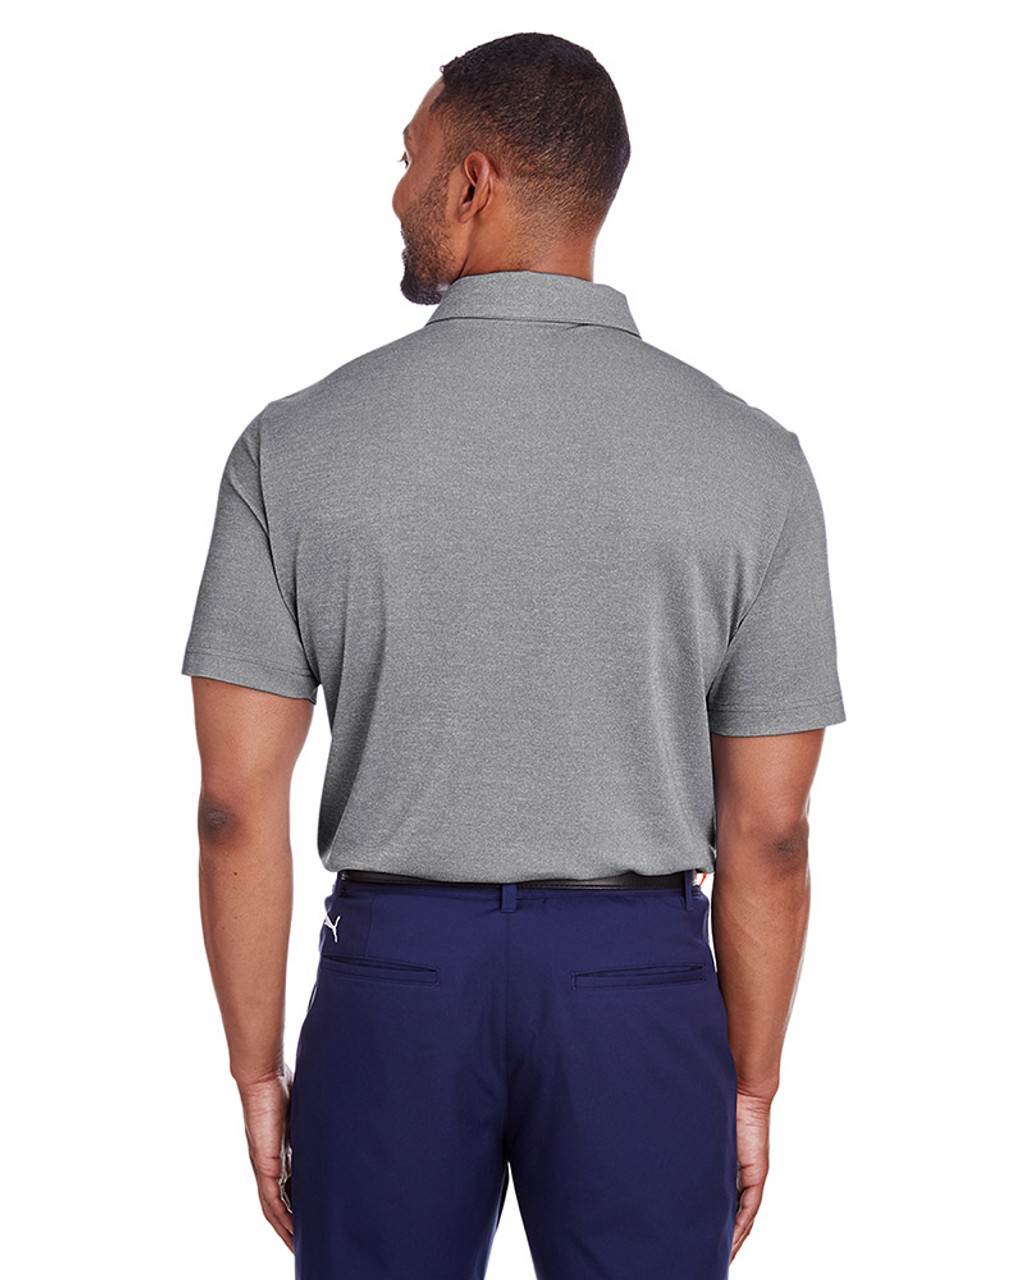 Puma Black Heather - back, 597220 Puma Golf Men's Grill-To-Green Polo | Blankclothing.ca